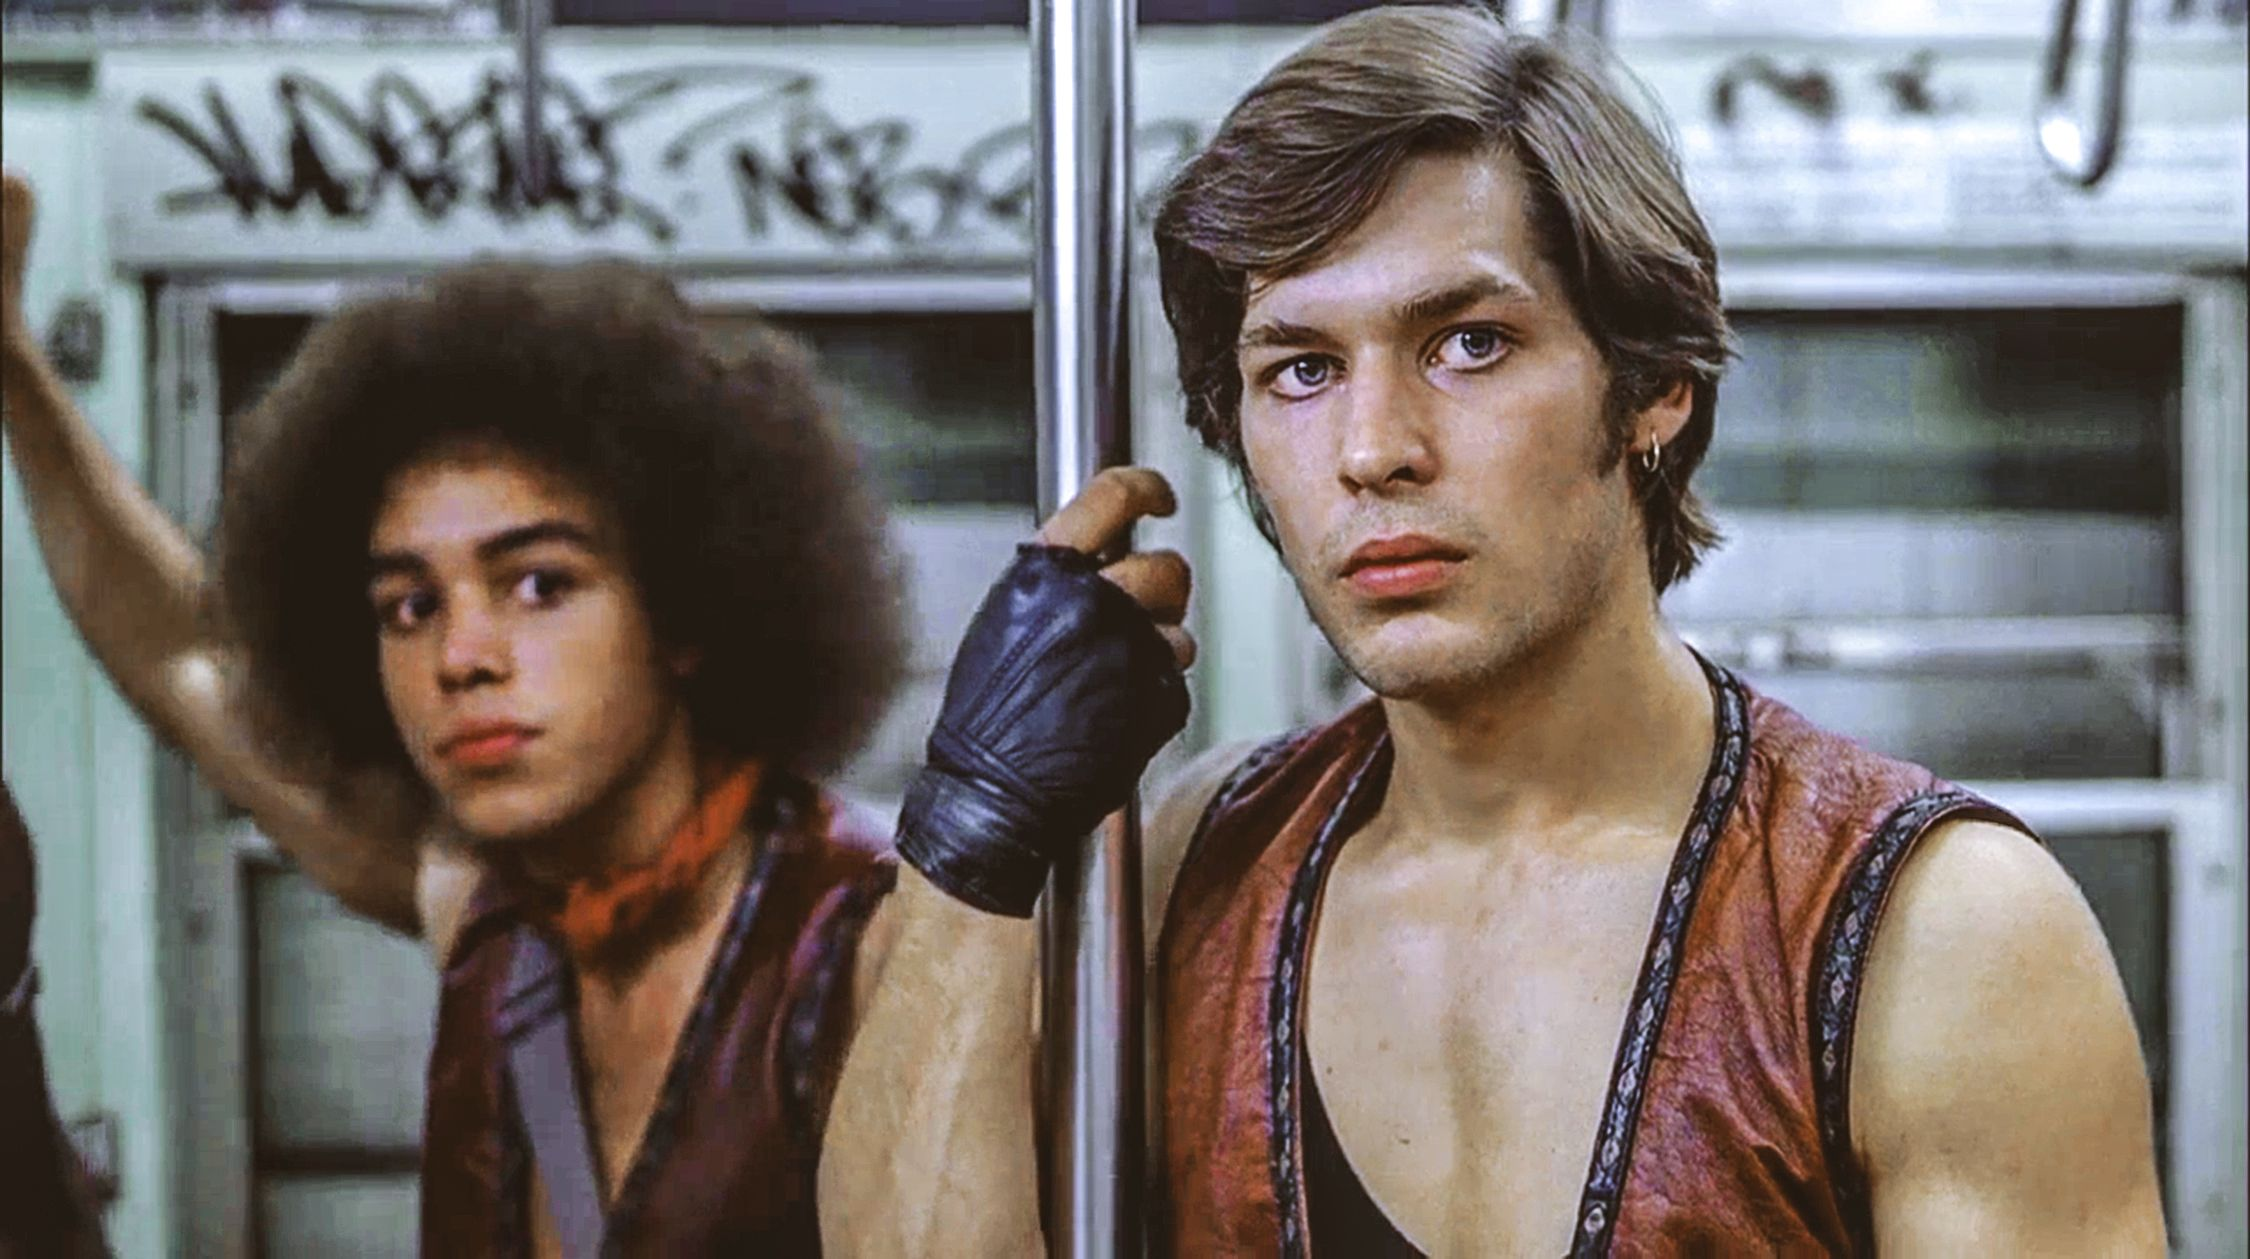 The Warriors movie [1979] Rembrandt and Ajax  | The Warriors